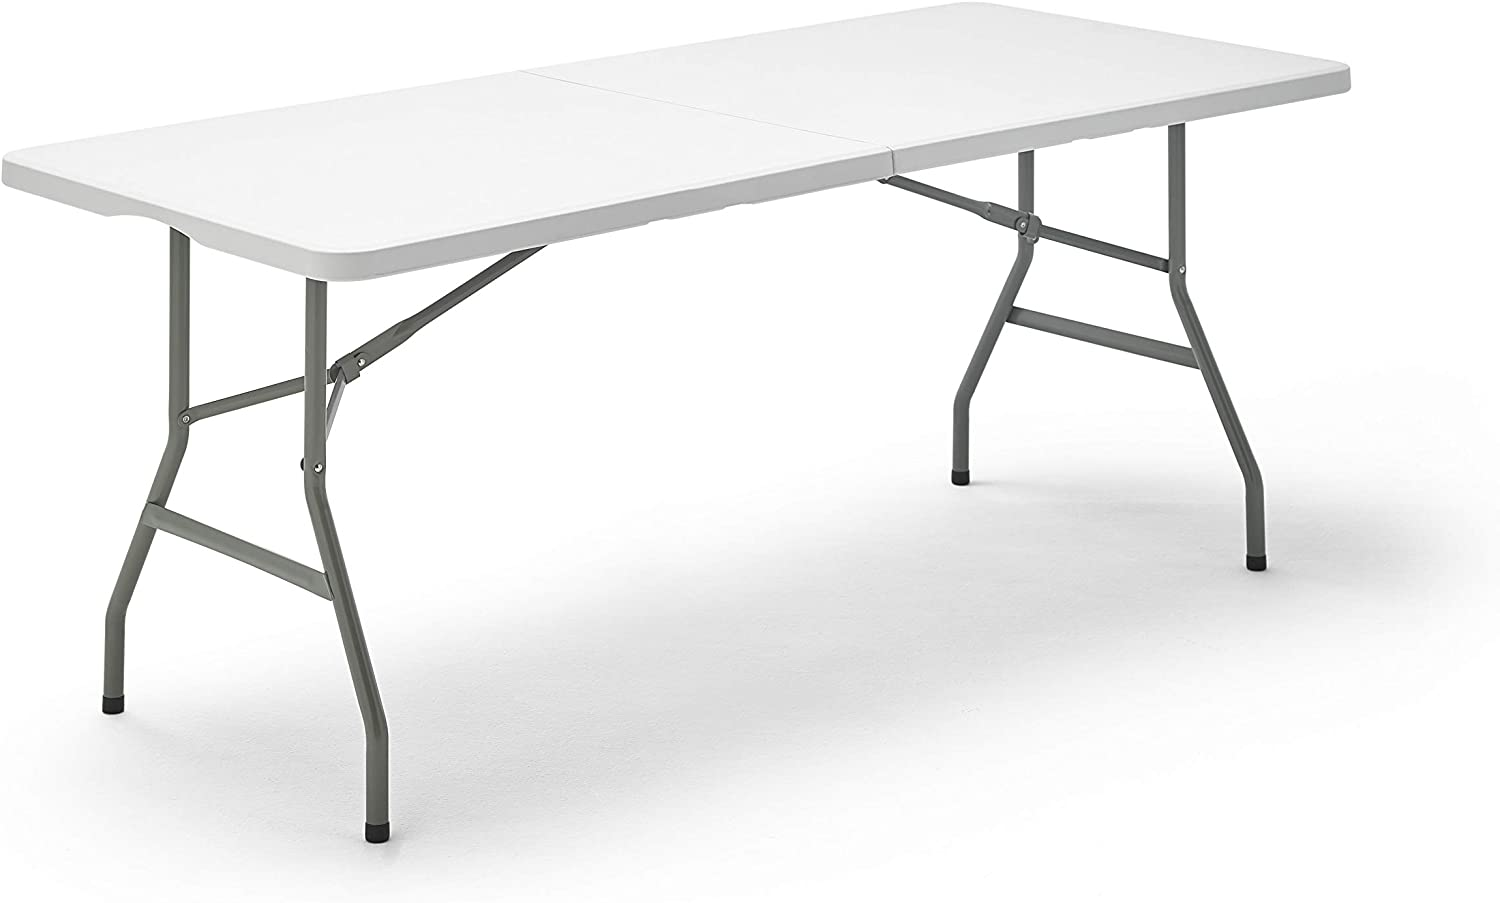 KitGarden Folding 180 - Mesa Plegable, color Blanco, 180x74x74 cm: Amazon.es: Jardín